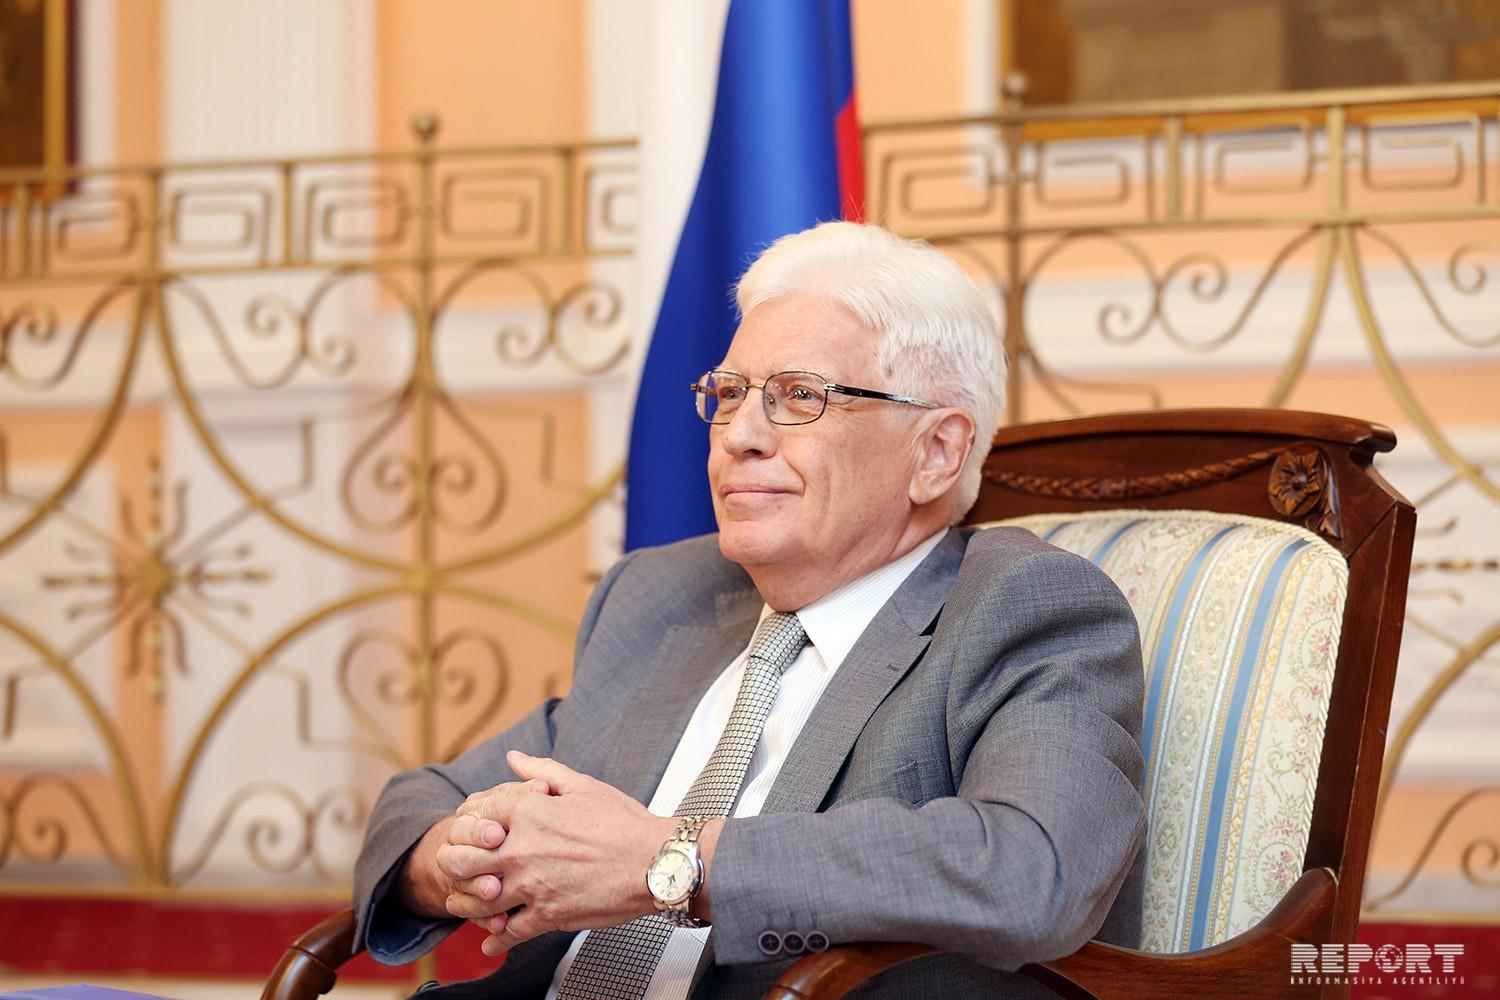 Ambassador: Russia will do everything possible to ensure closer interaction and cooperation with Azerbaijan